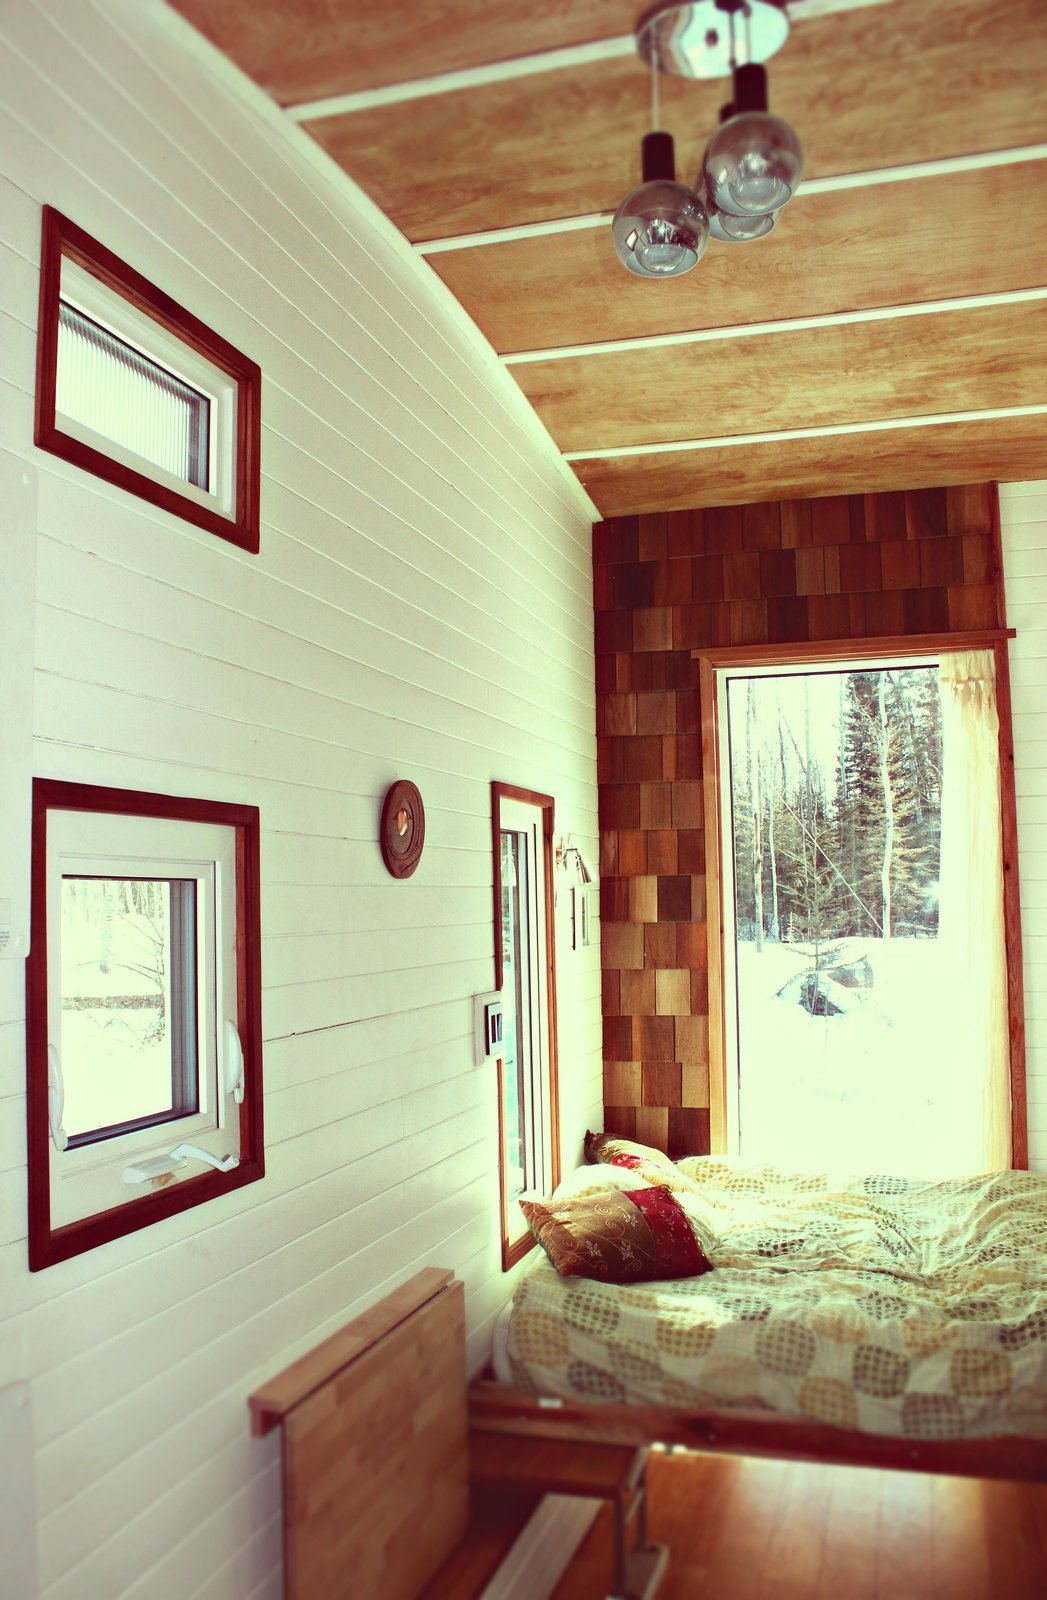 A custom Murphy bed occupies the rear end of the trailer, next to a wall of cedar shingles. The wall at left, which Herbert painted white, is tongue-and-groove pine.